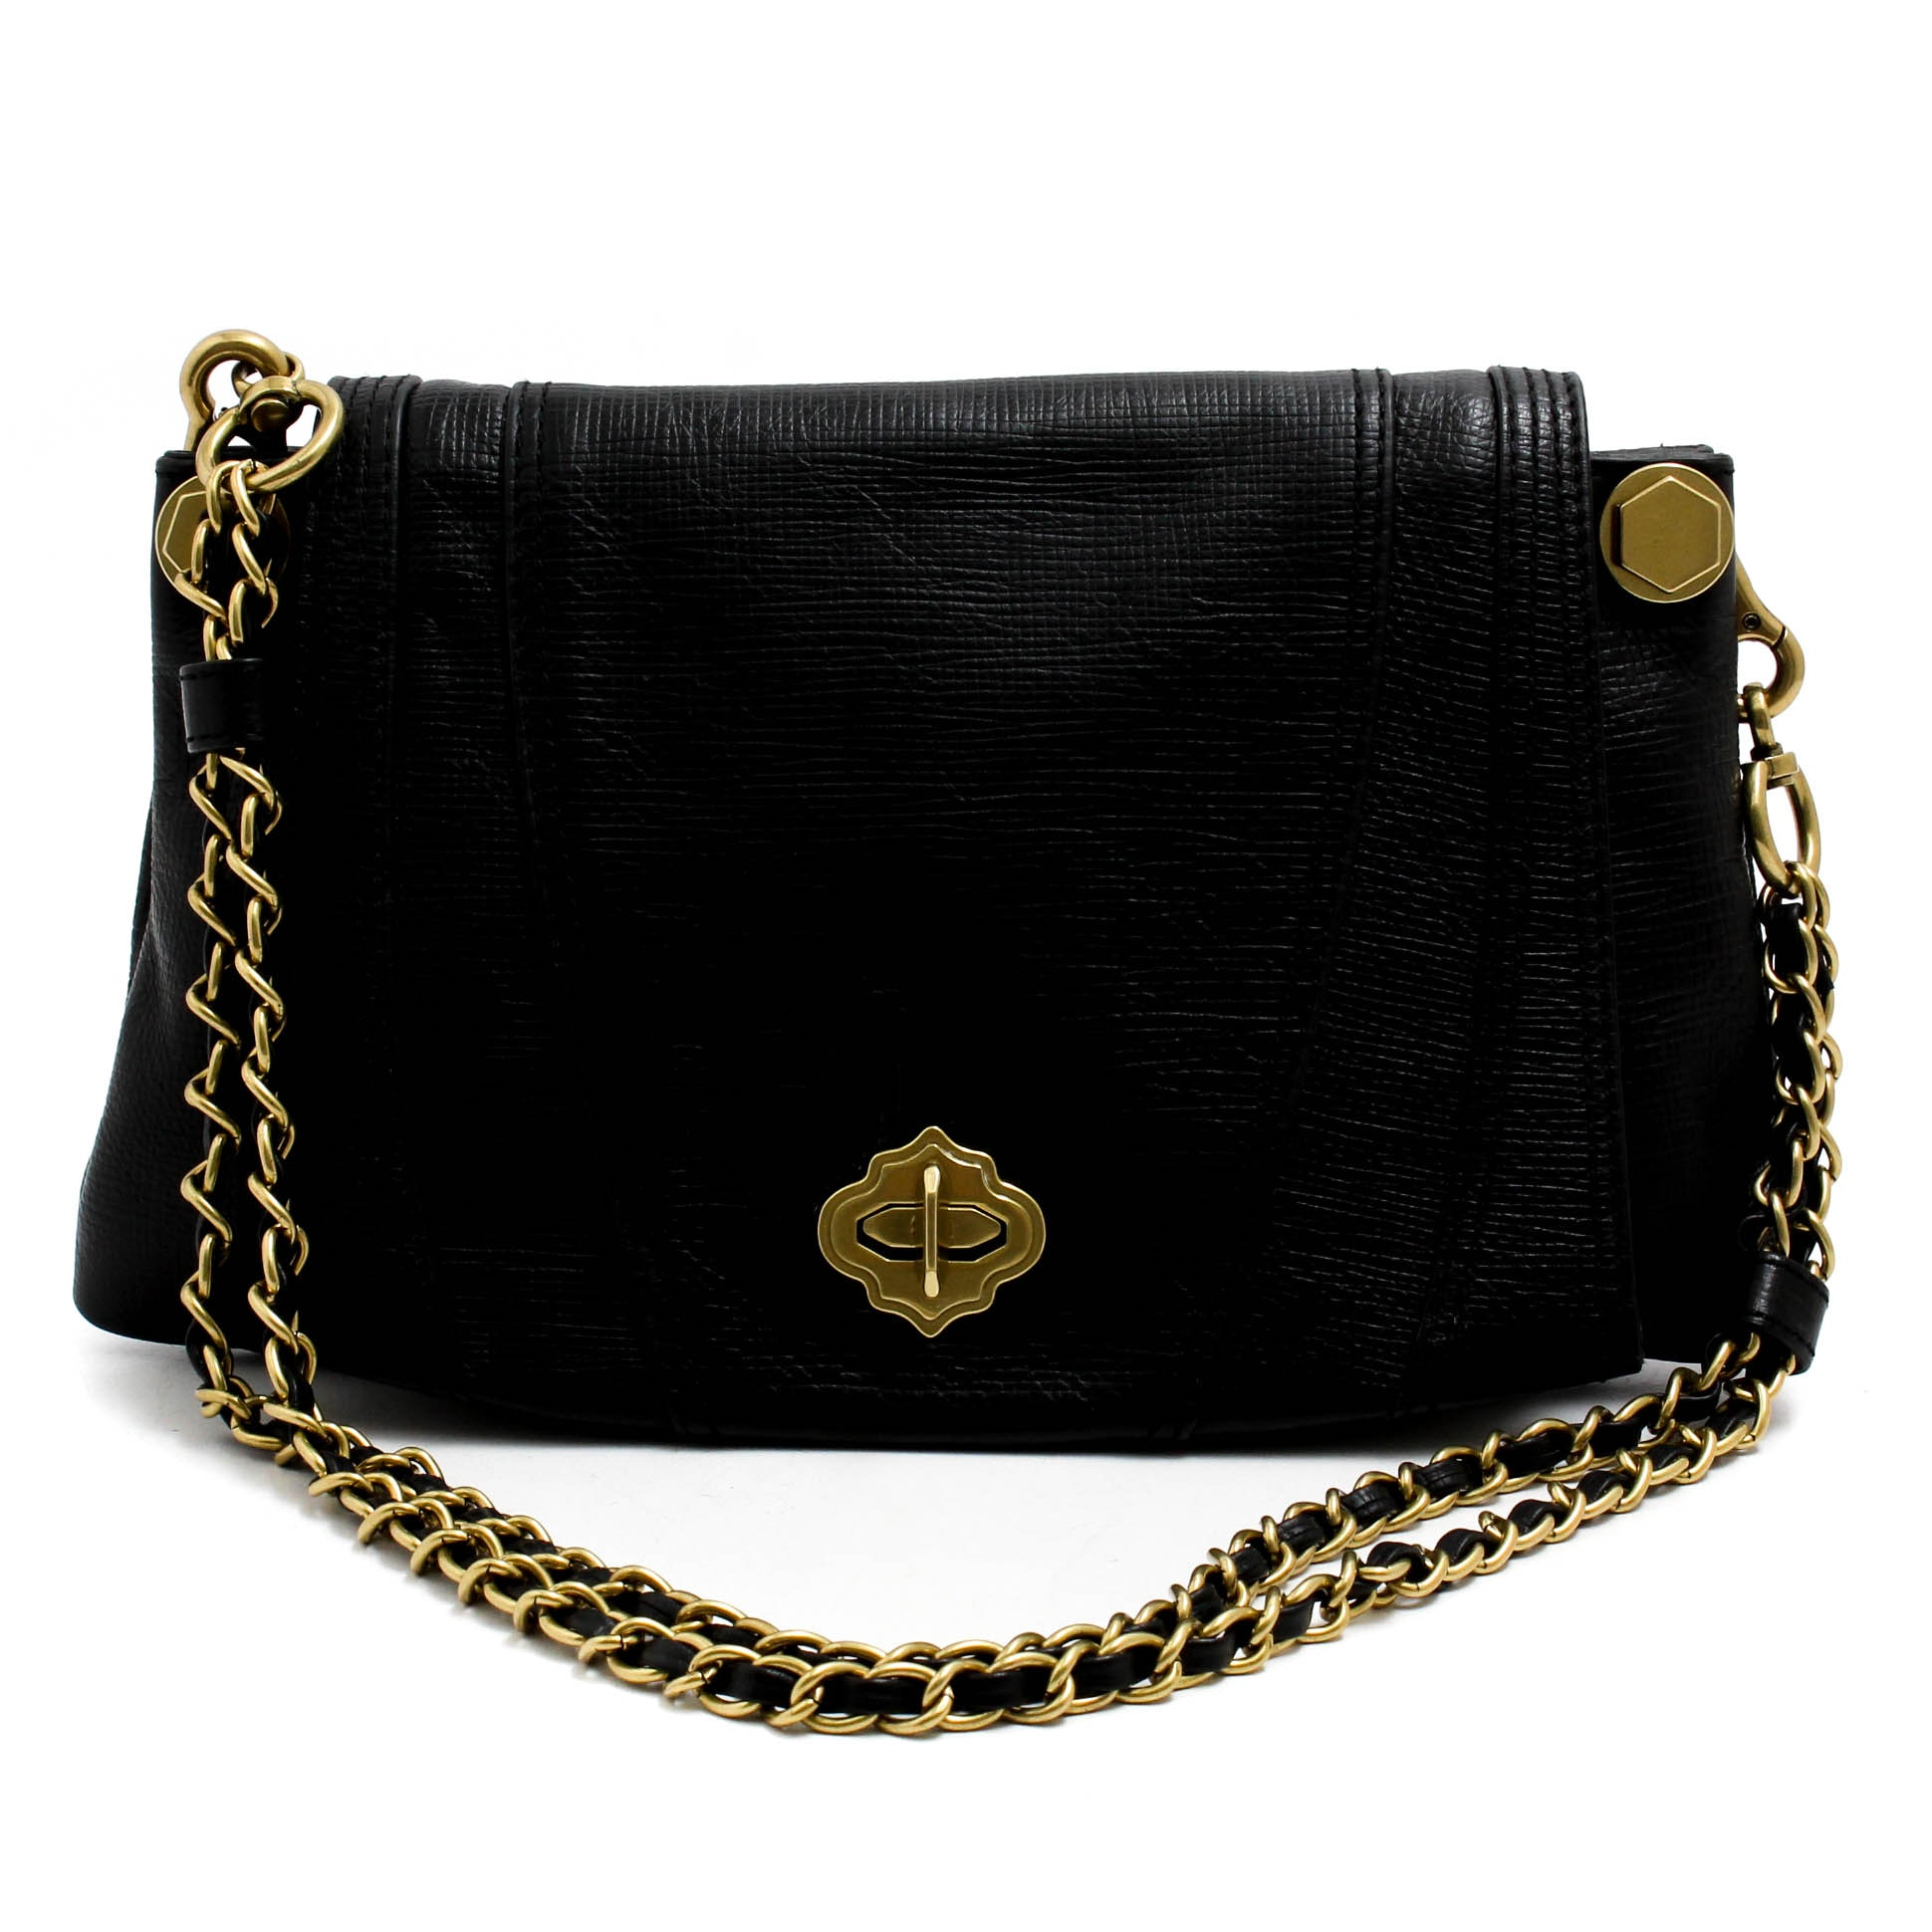 Oryany Black Leather Handbag